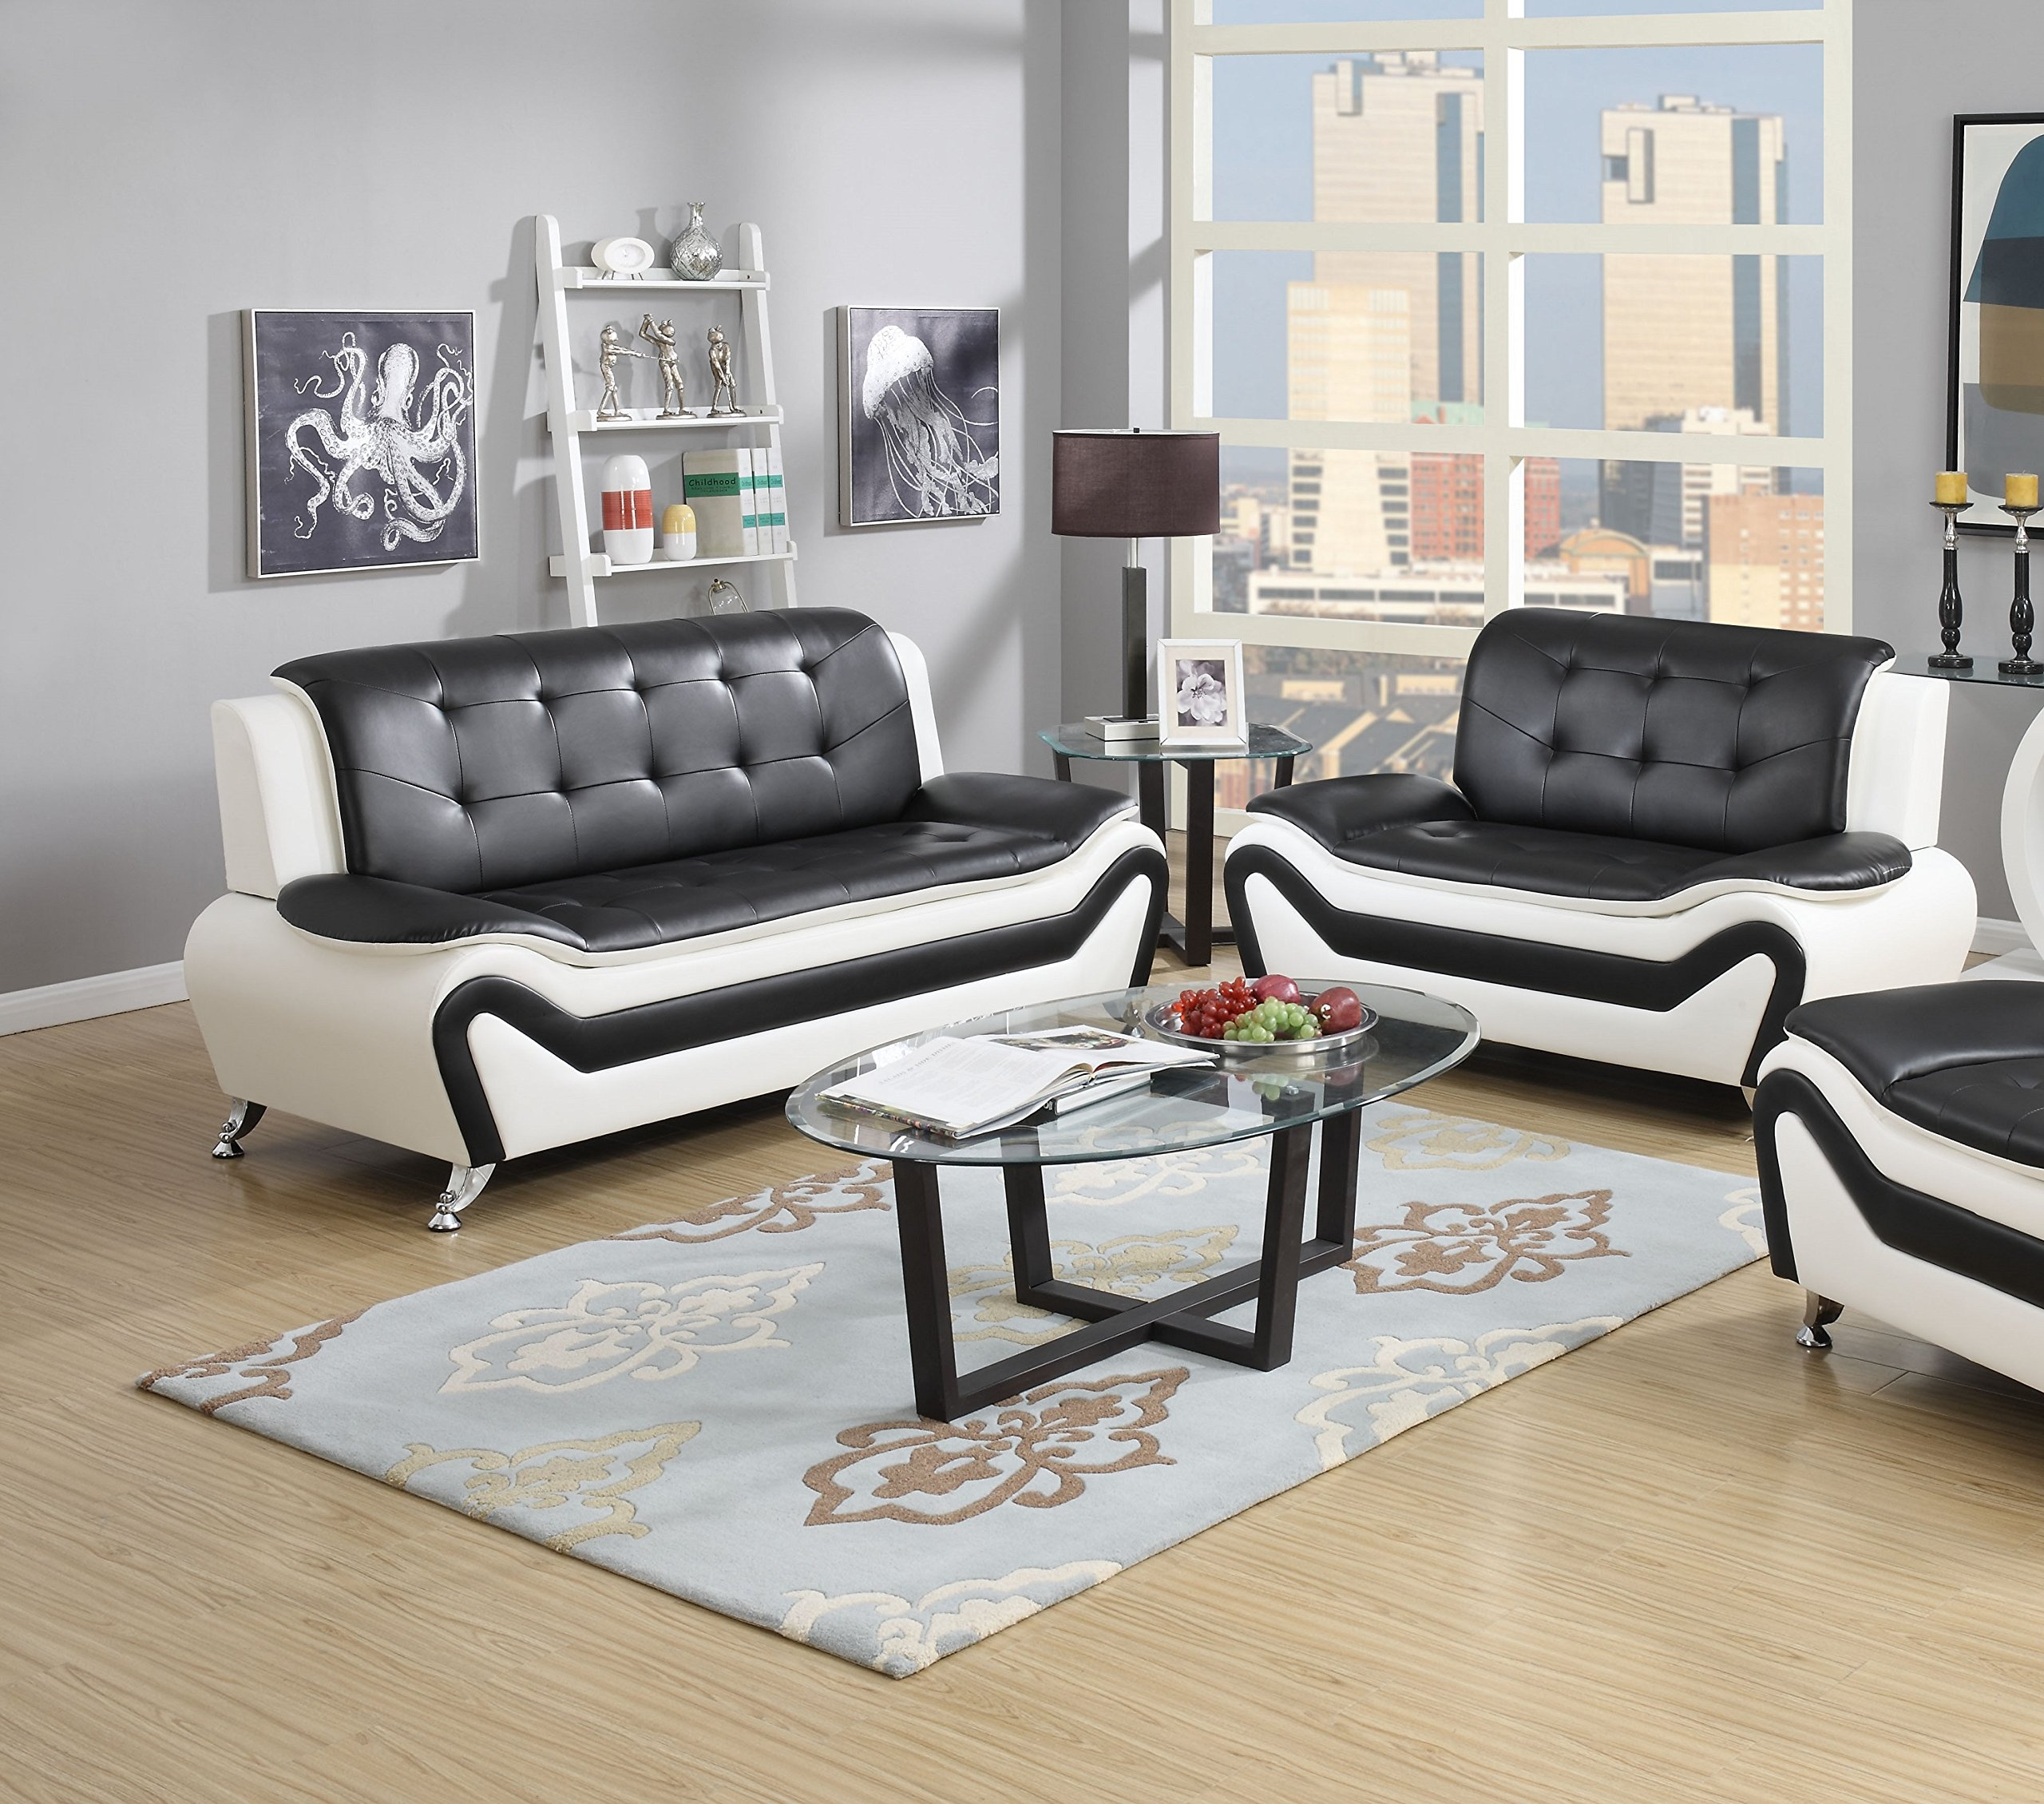 US Pride Furniture 2 Piece Modern Bonded Leather Sofa Set with Sofa and Loveseat, White/Black by US Pride Furniture